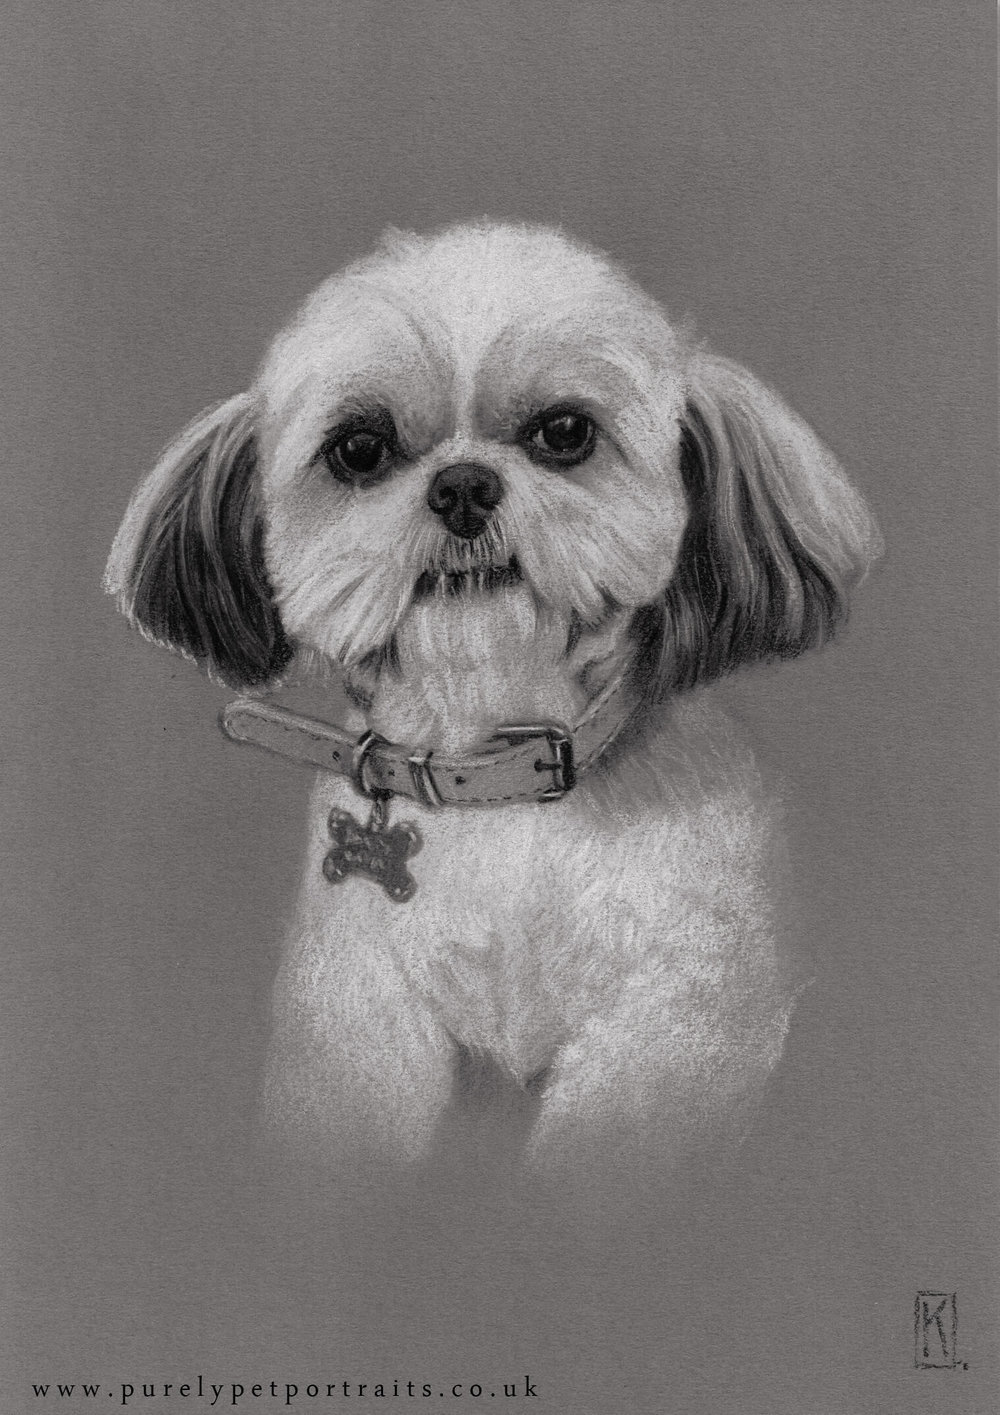 Portrait of Honey by www.purelypetportraits.co.uk